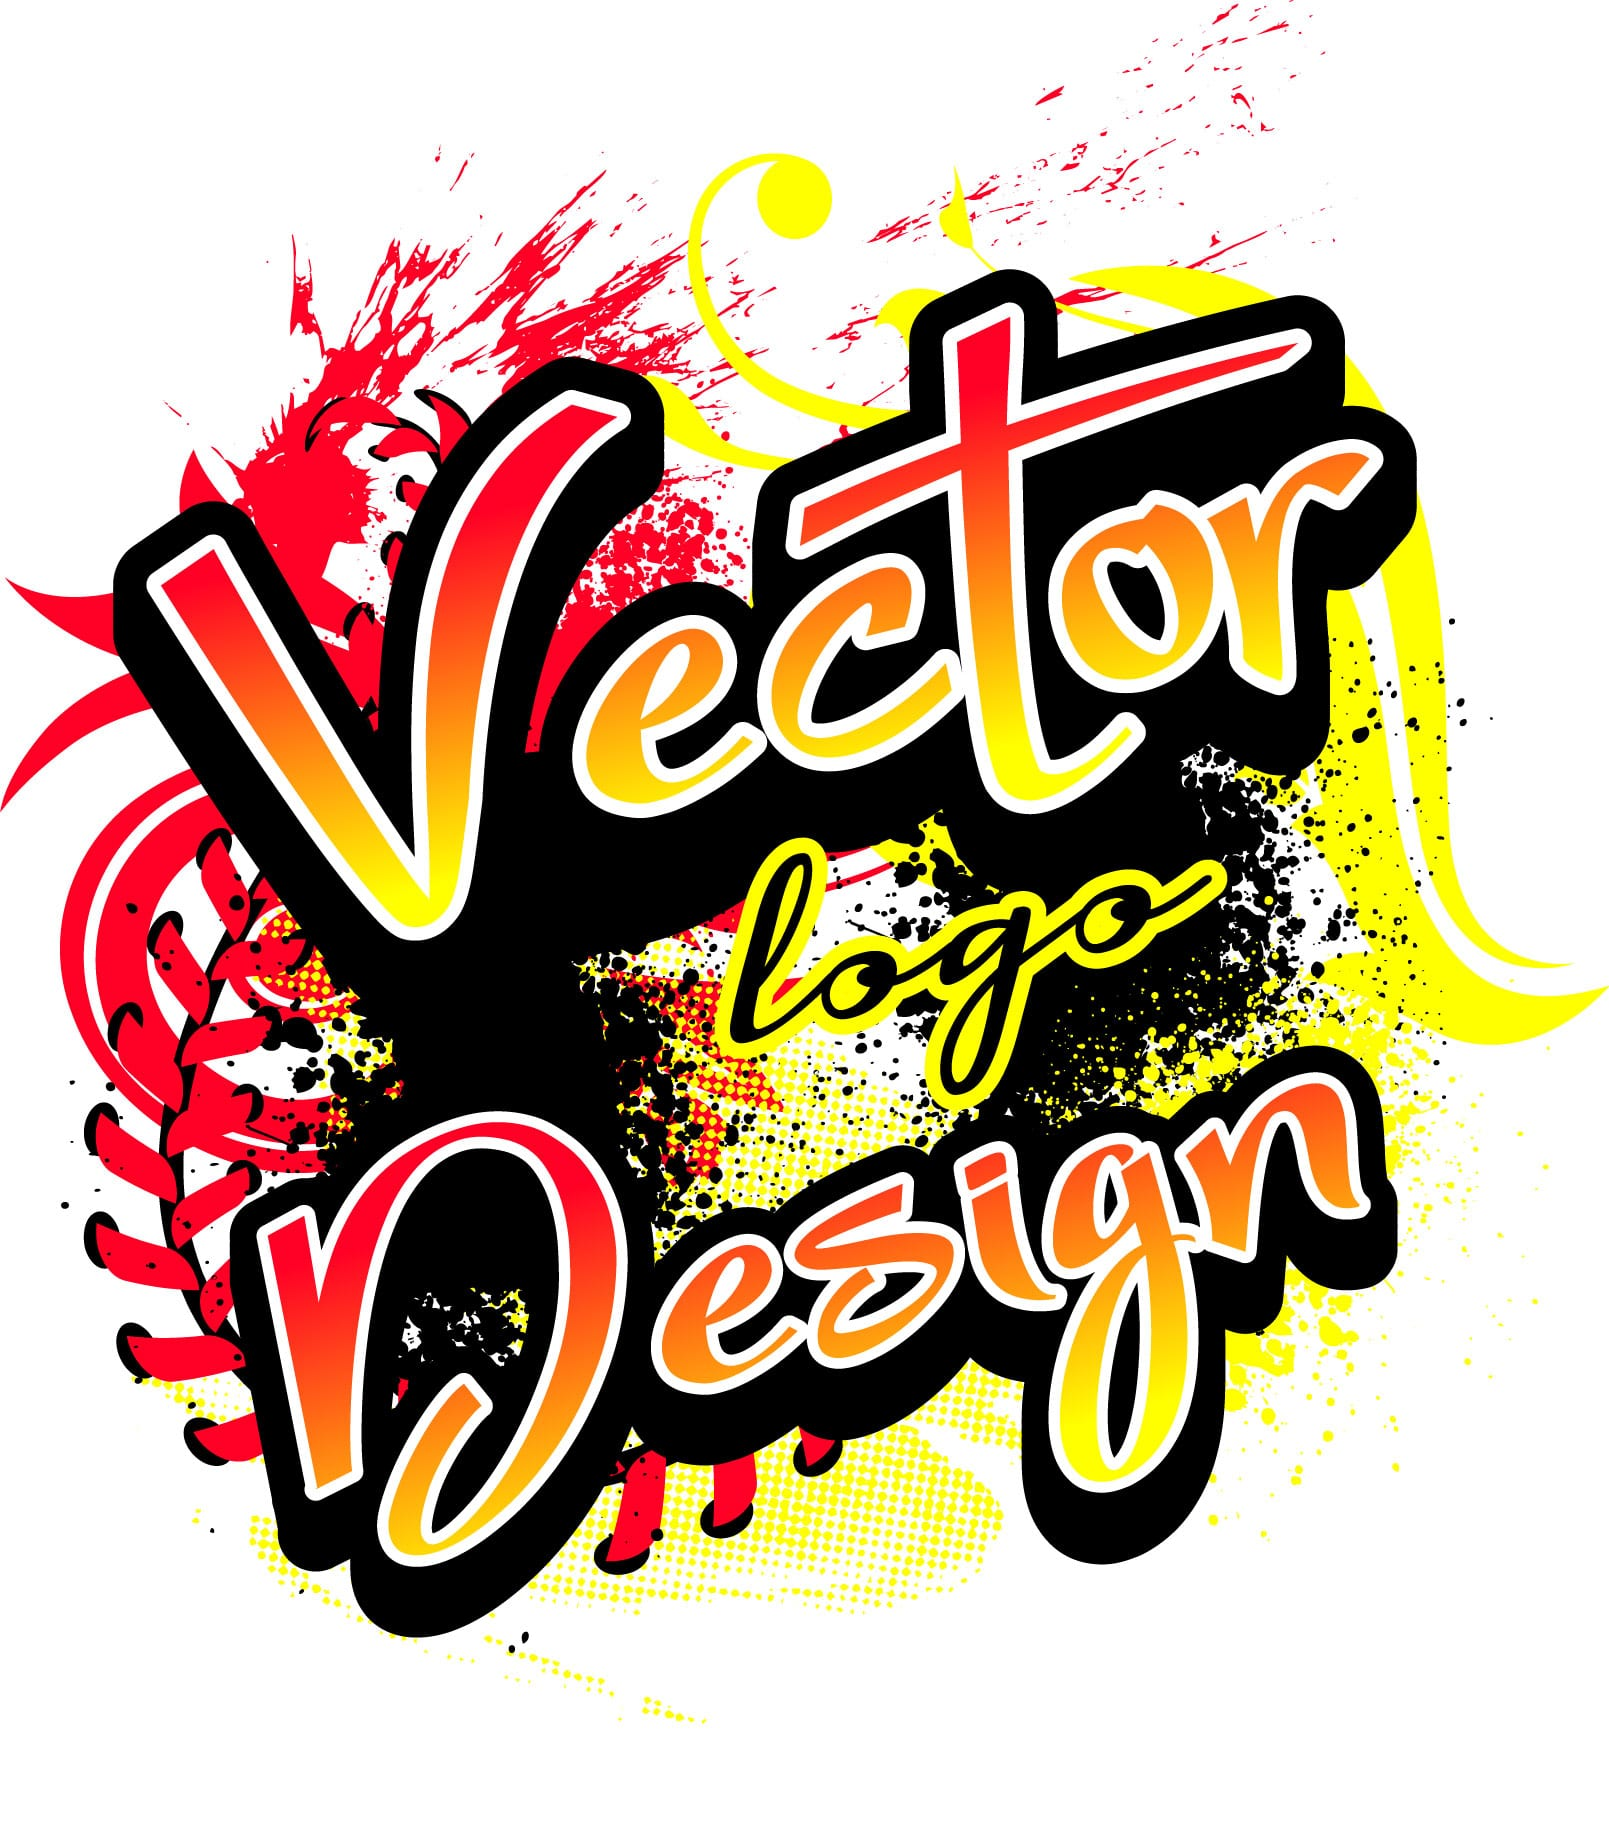 VECTOR LOGO DESIGN